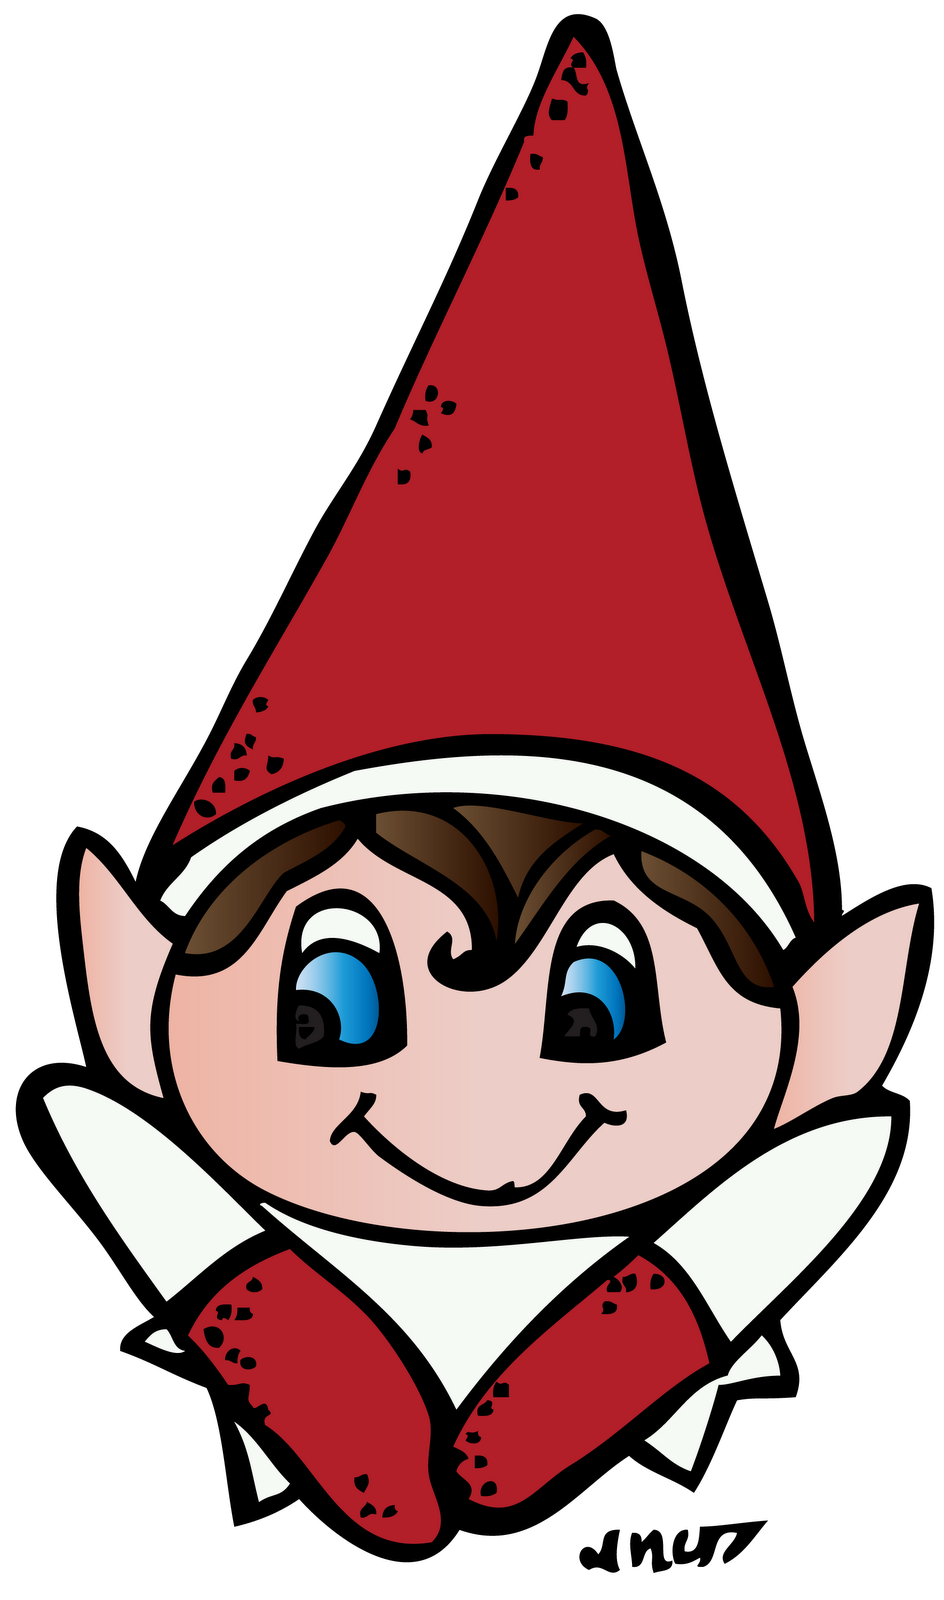 Clip Art Elf On The Shelf Clipart elf on the shelf clipart kid classroom fun shelf